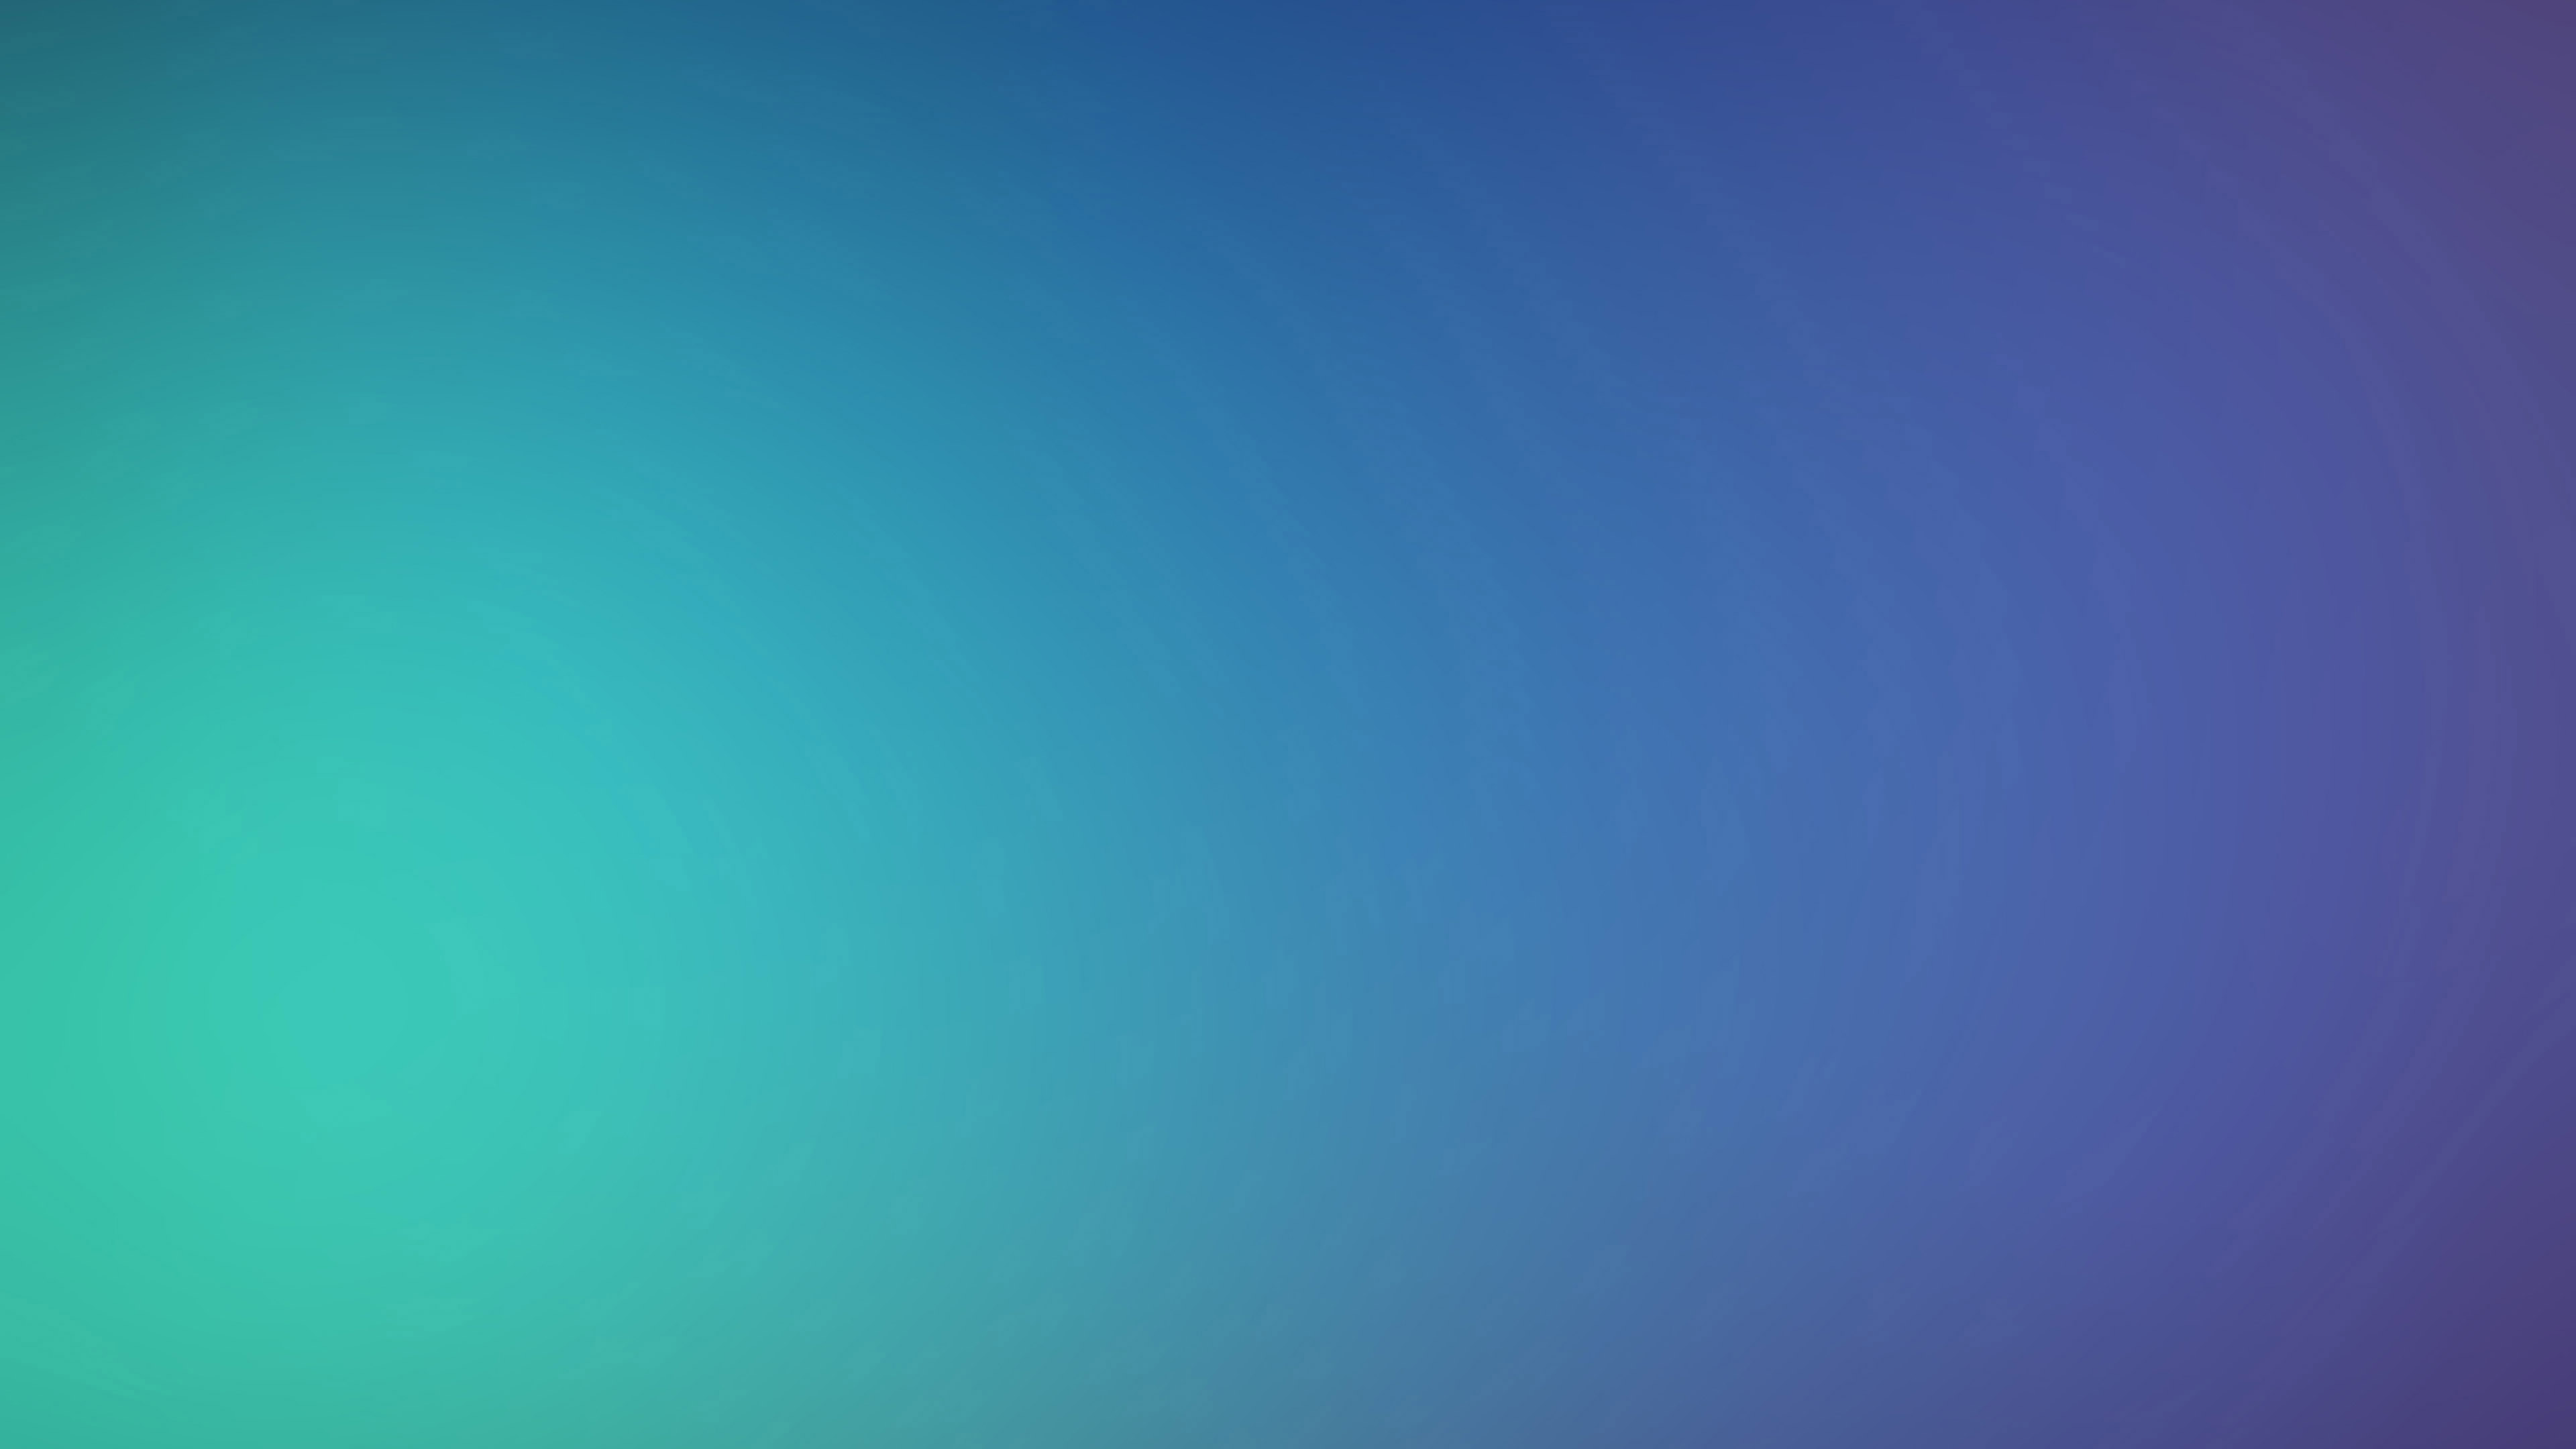 Simple Wallpapers Colors Fall Sd69 Blue Windows Green Gradation Blur Papers Co